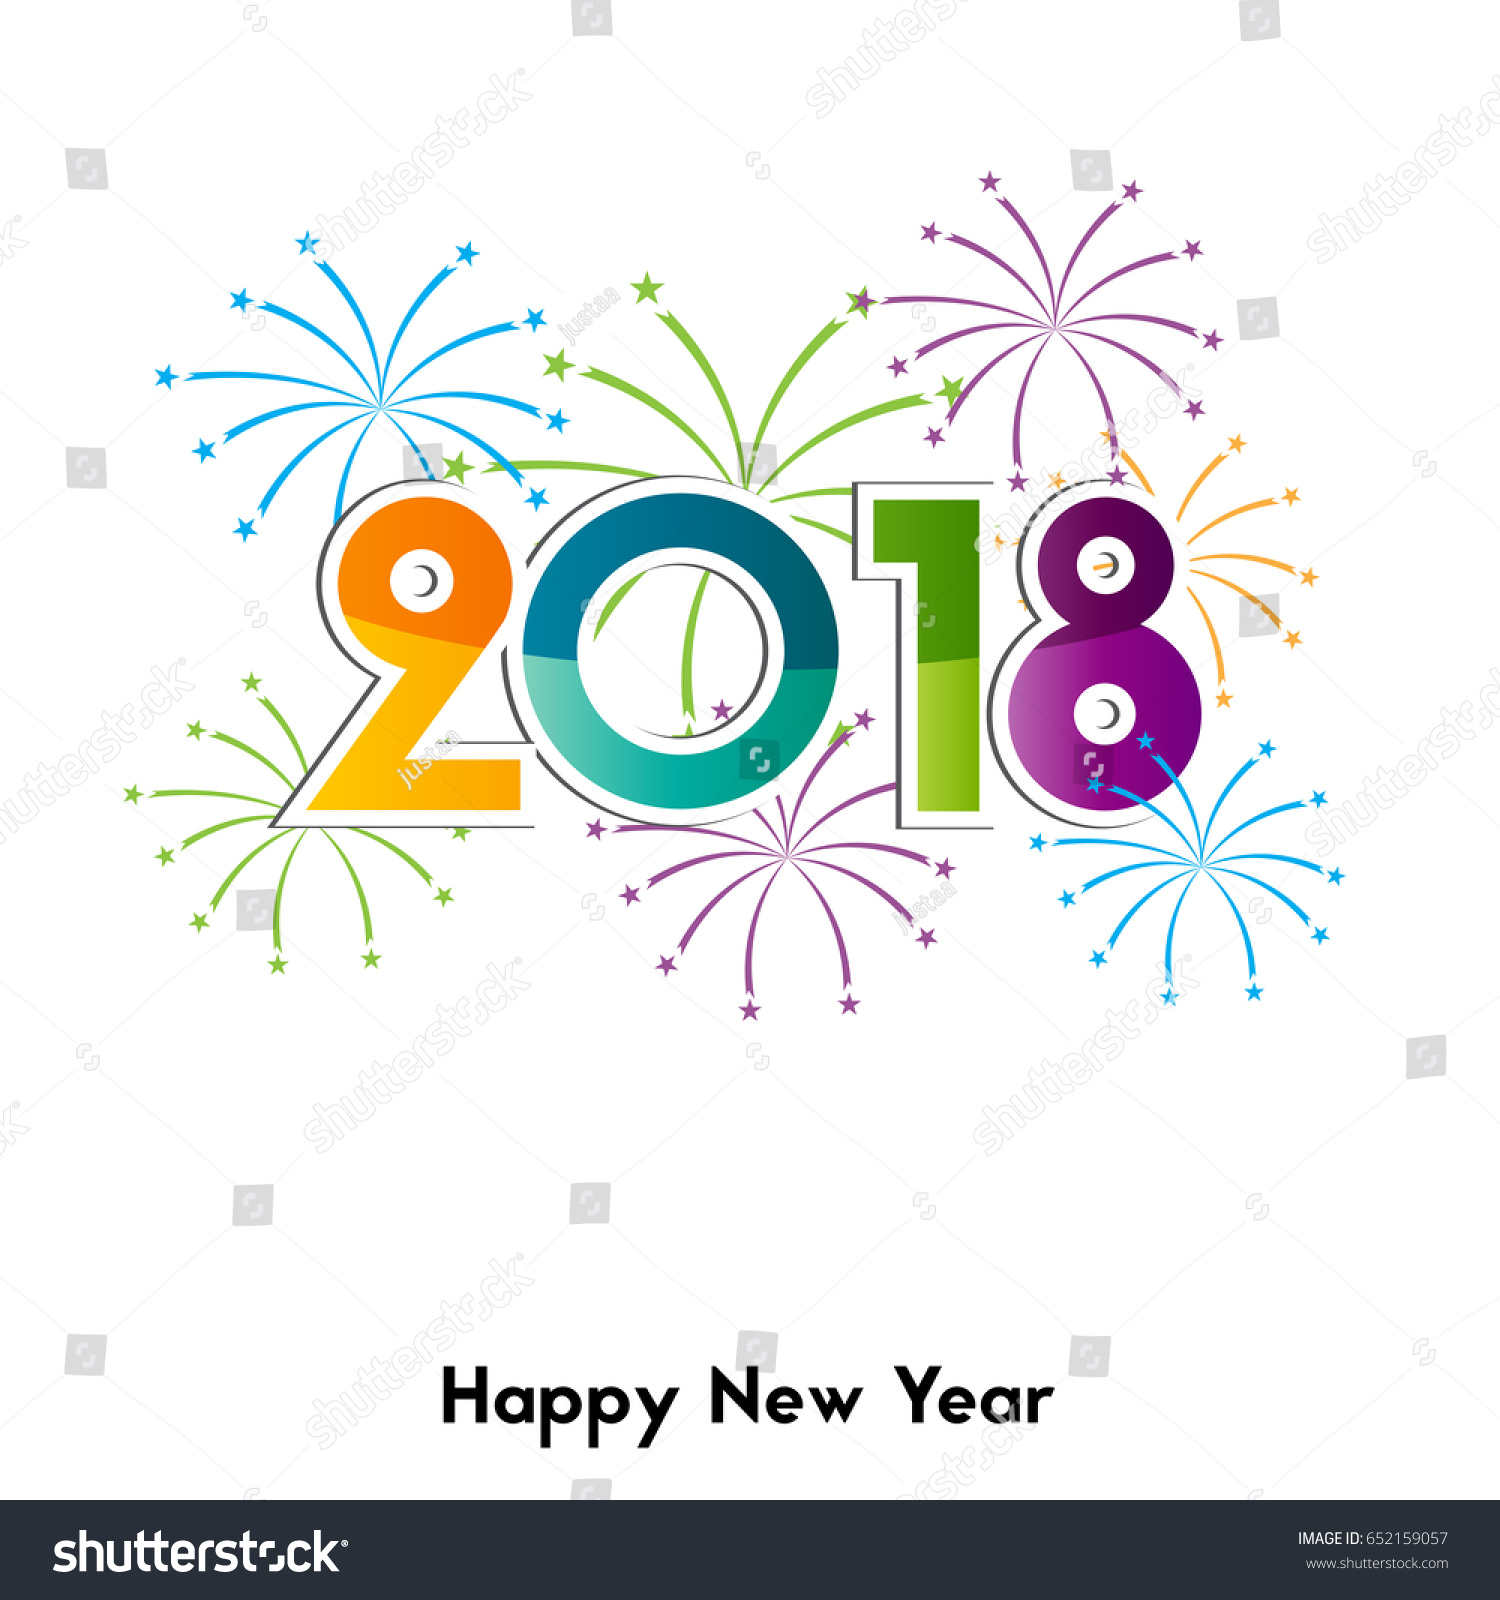 happy new year 2018 background or element of a holidays card colorful fireworks